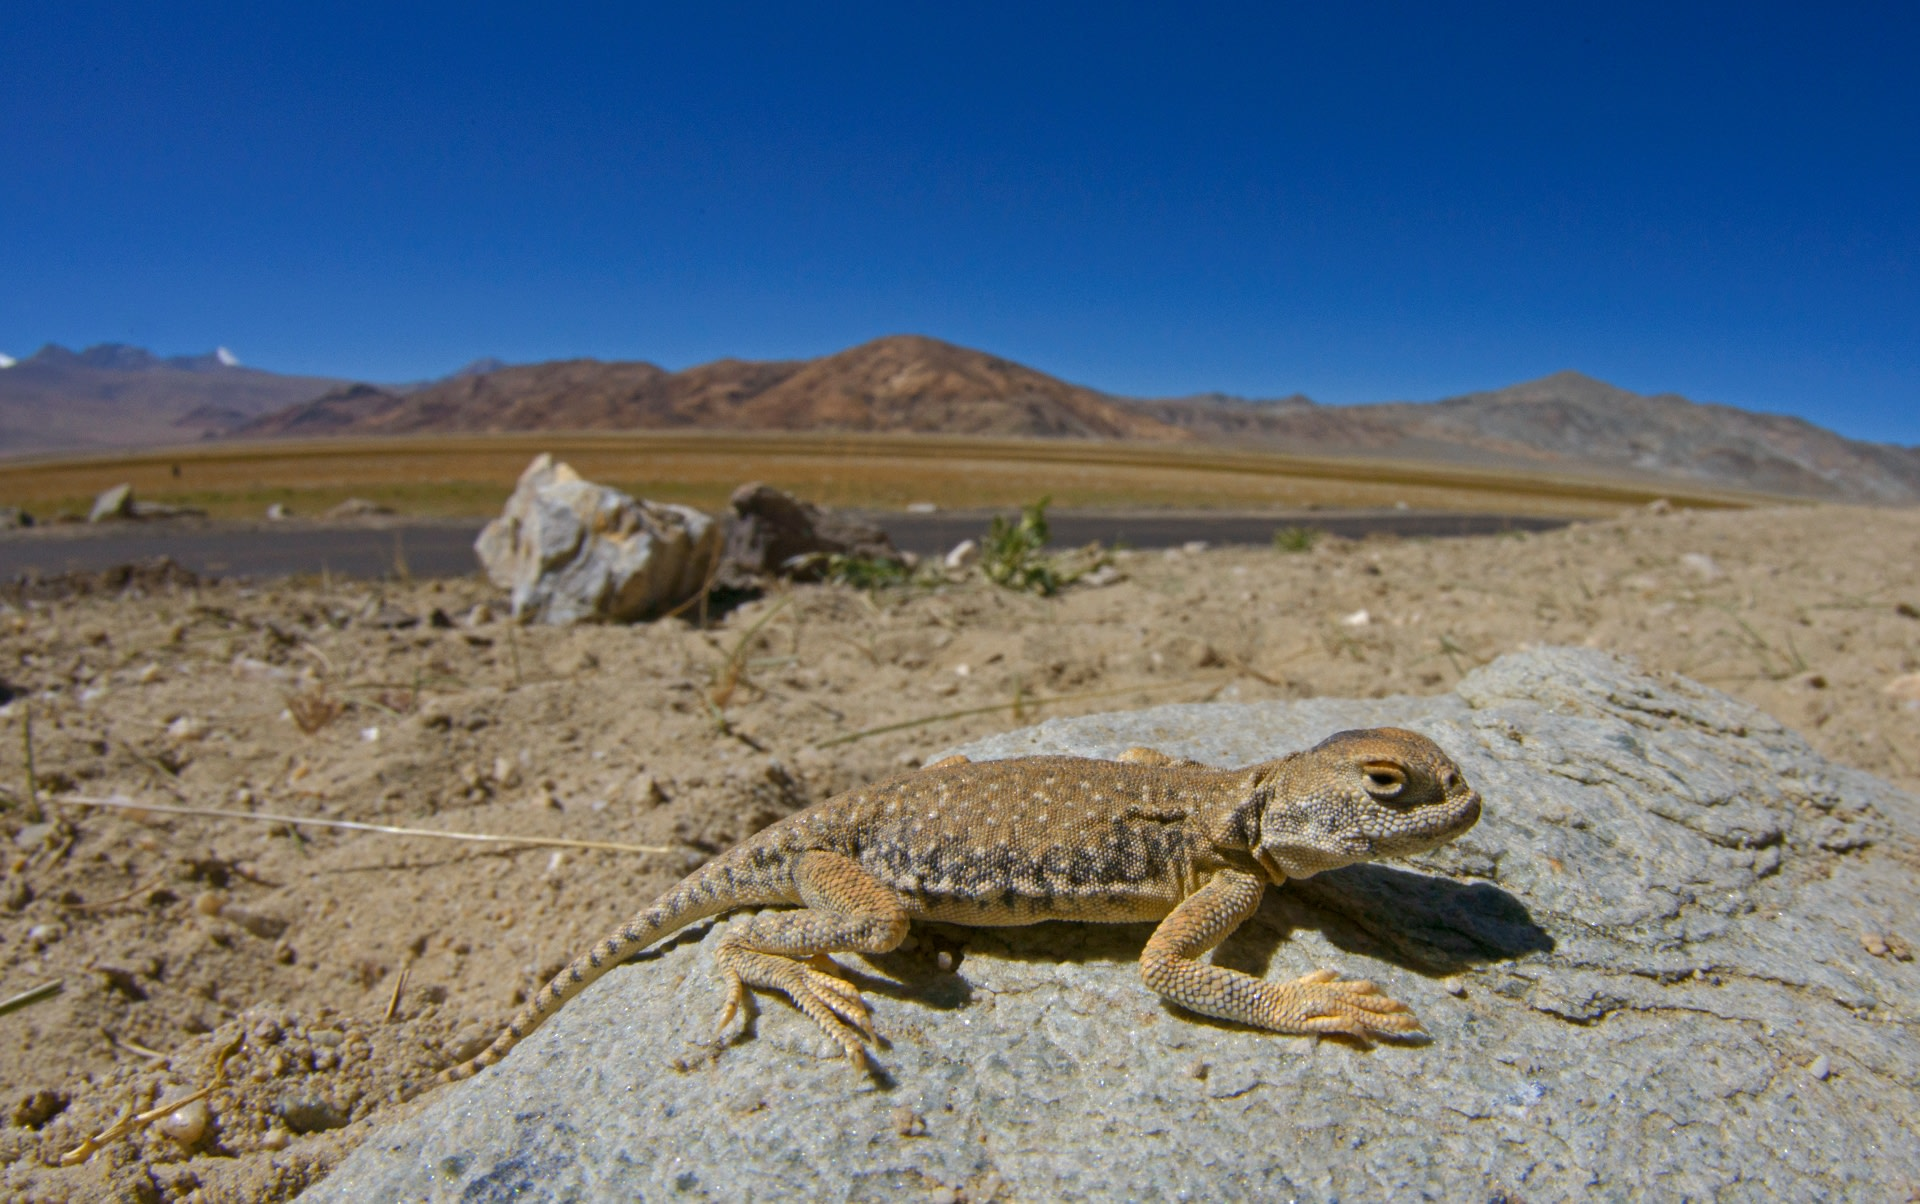 Uniquely genetically adapted to live in the unforgiving cold of the Changthang region, the toad-headed agama is often found near water bodies, spending a fair amount of the day sunning itself on rocks.